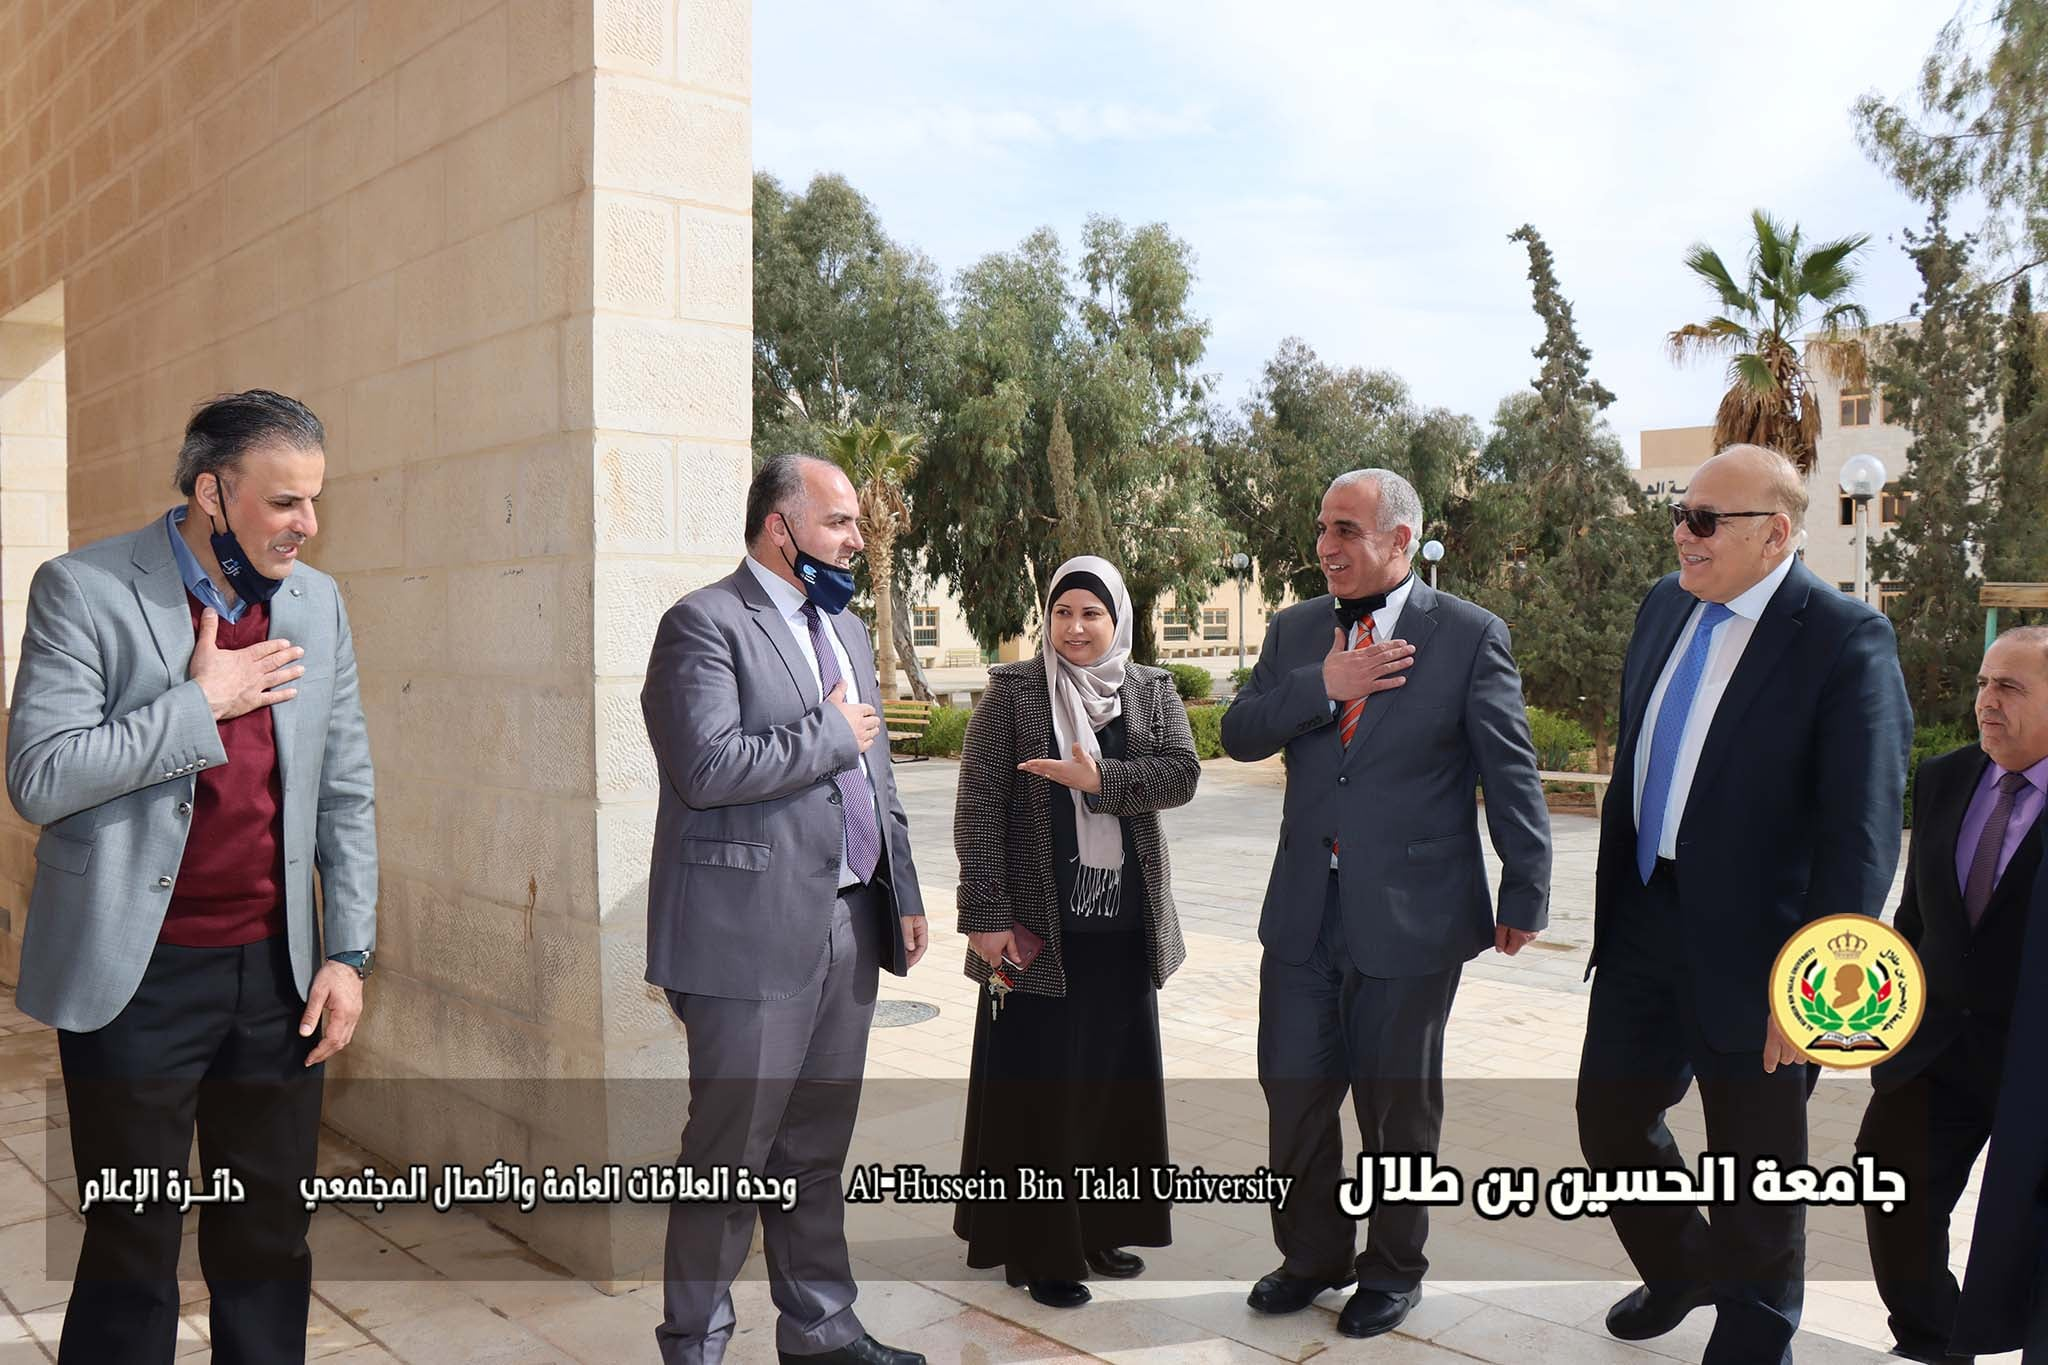 His Excellency the Secretary General of the Association of Arab Universities visits the College of Information Technology